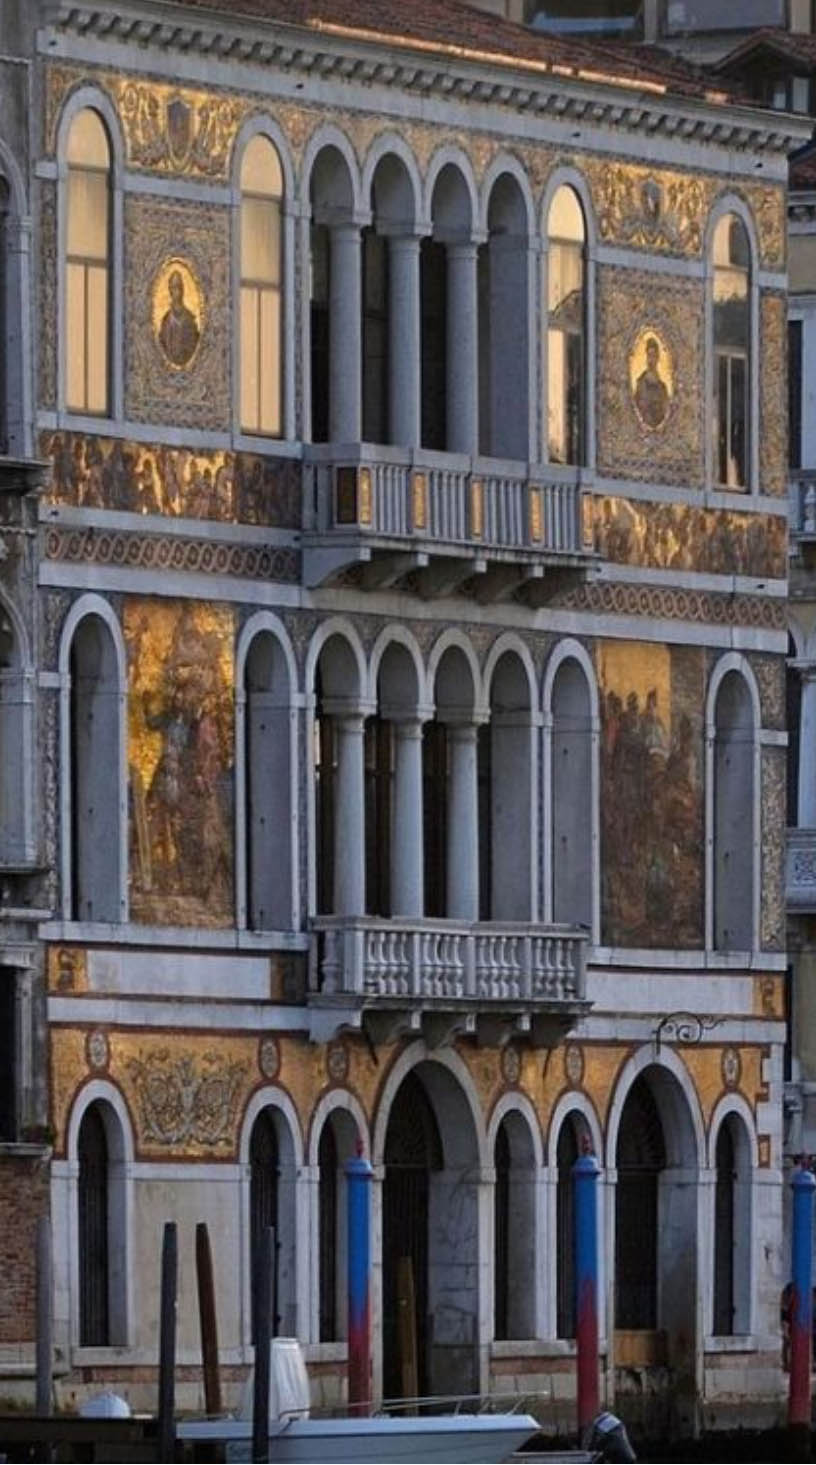 Luxury Venice tour with private guide - Italy car tours